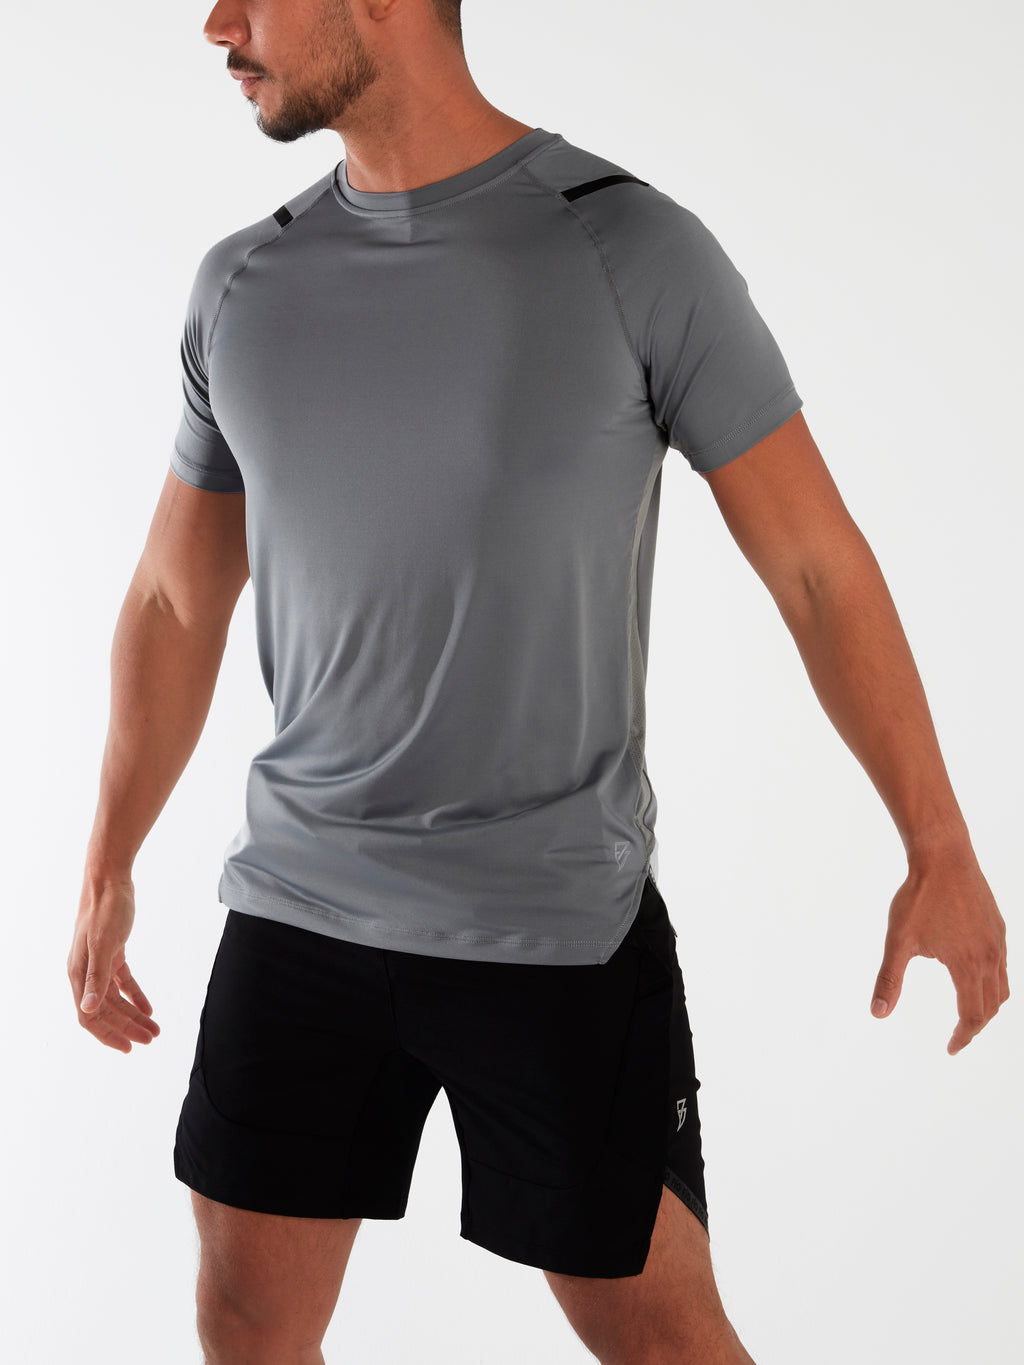 Eco Tech Tee - Glacier Grey